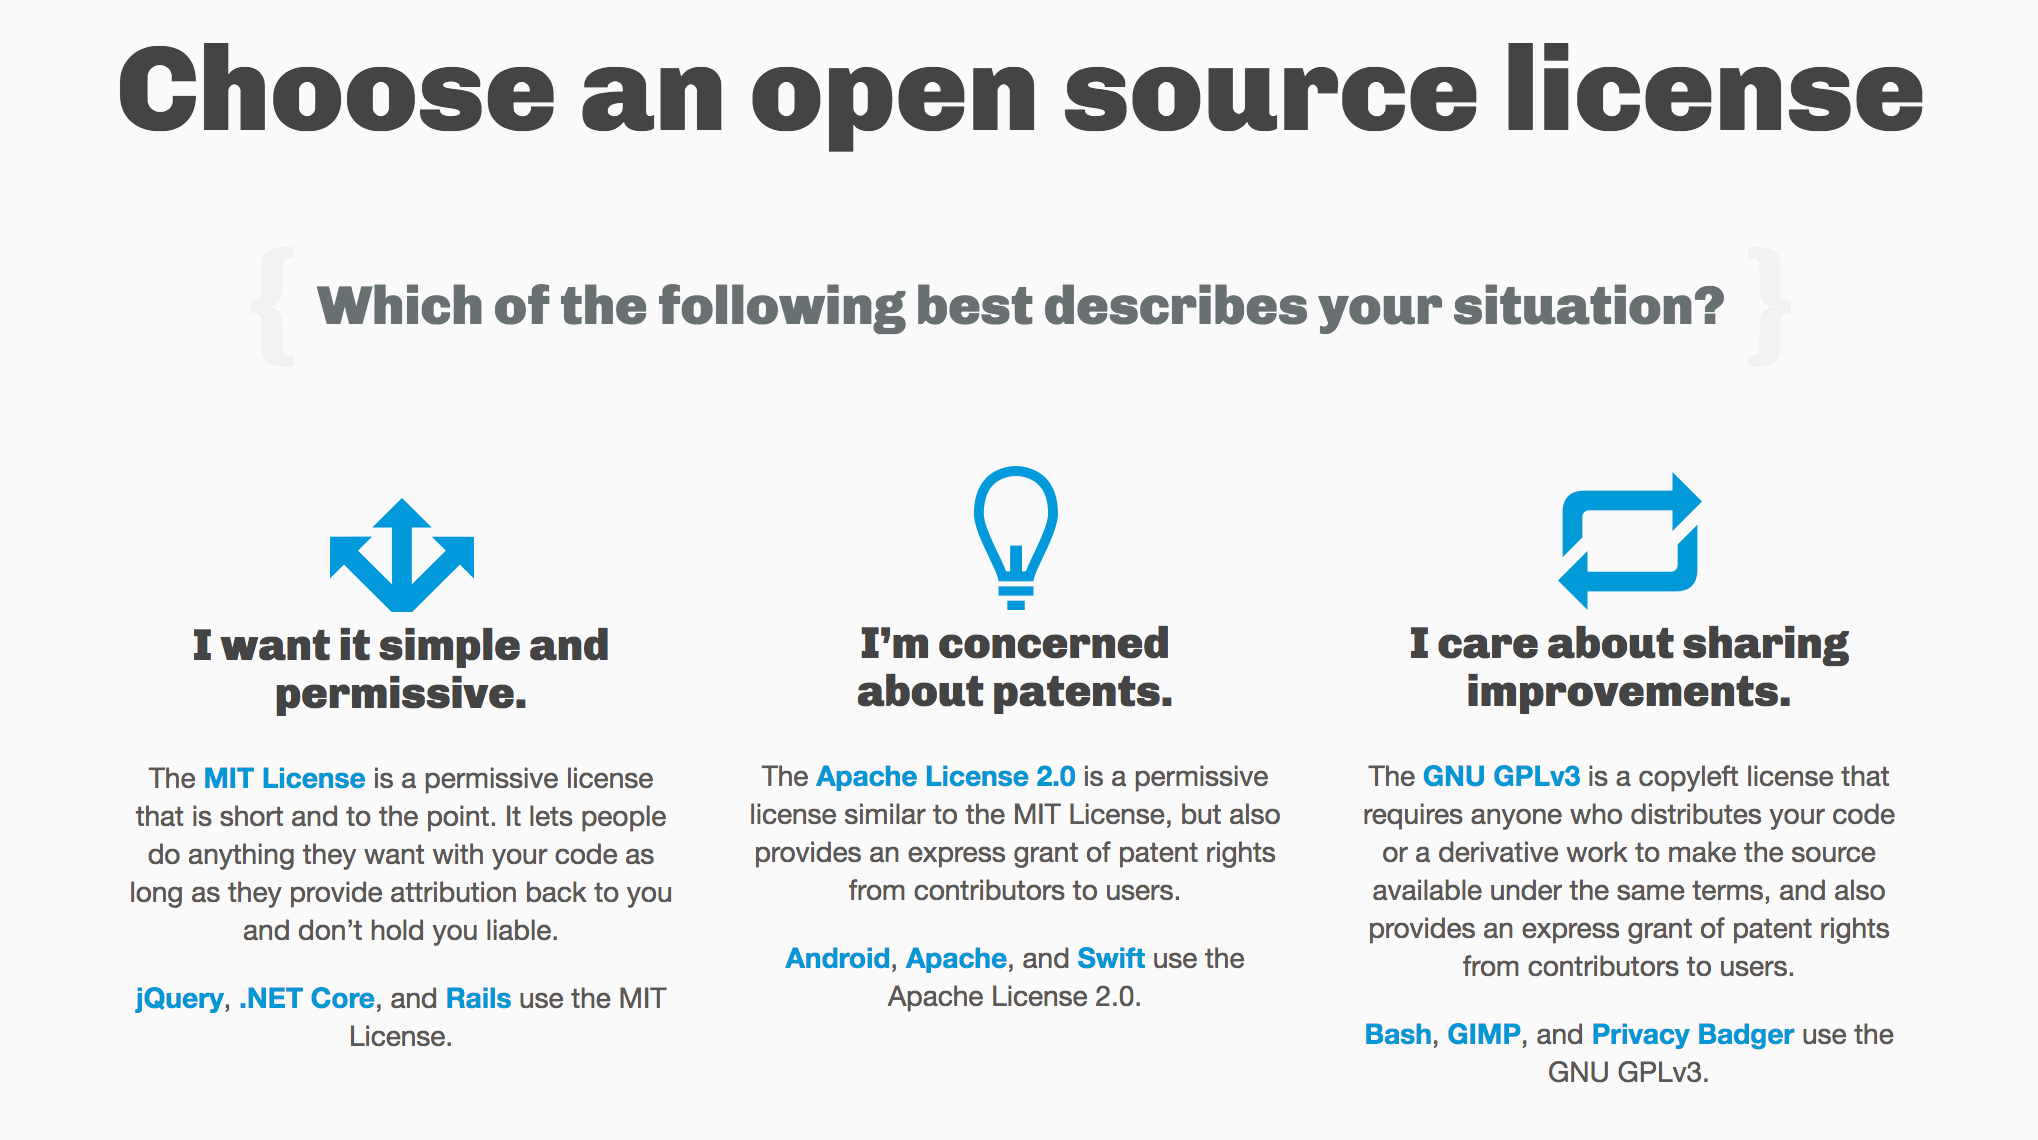 Choose an open source license {Which of the following best describes your situation?}